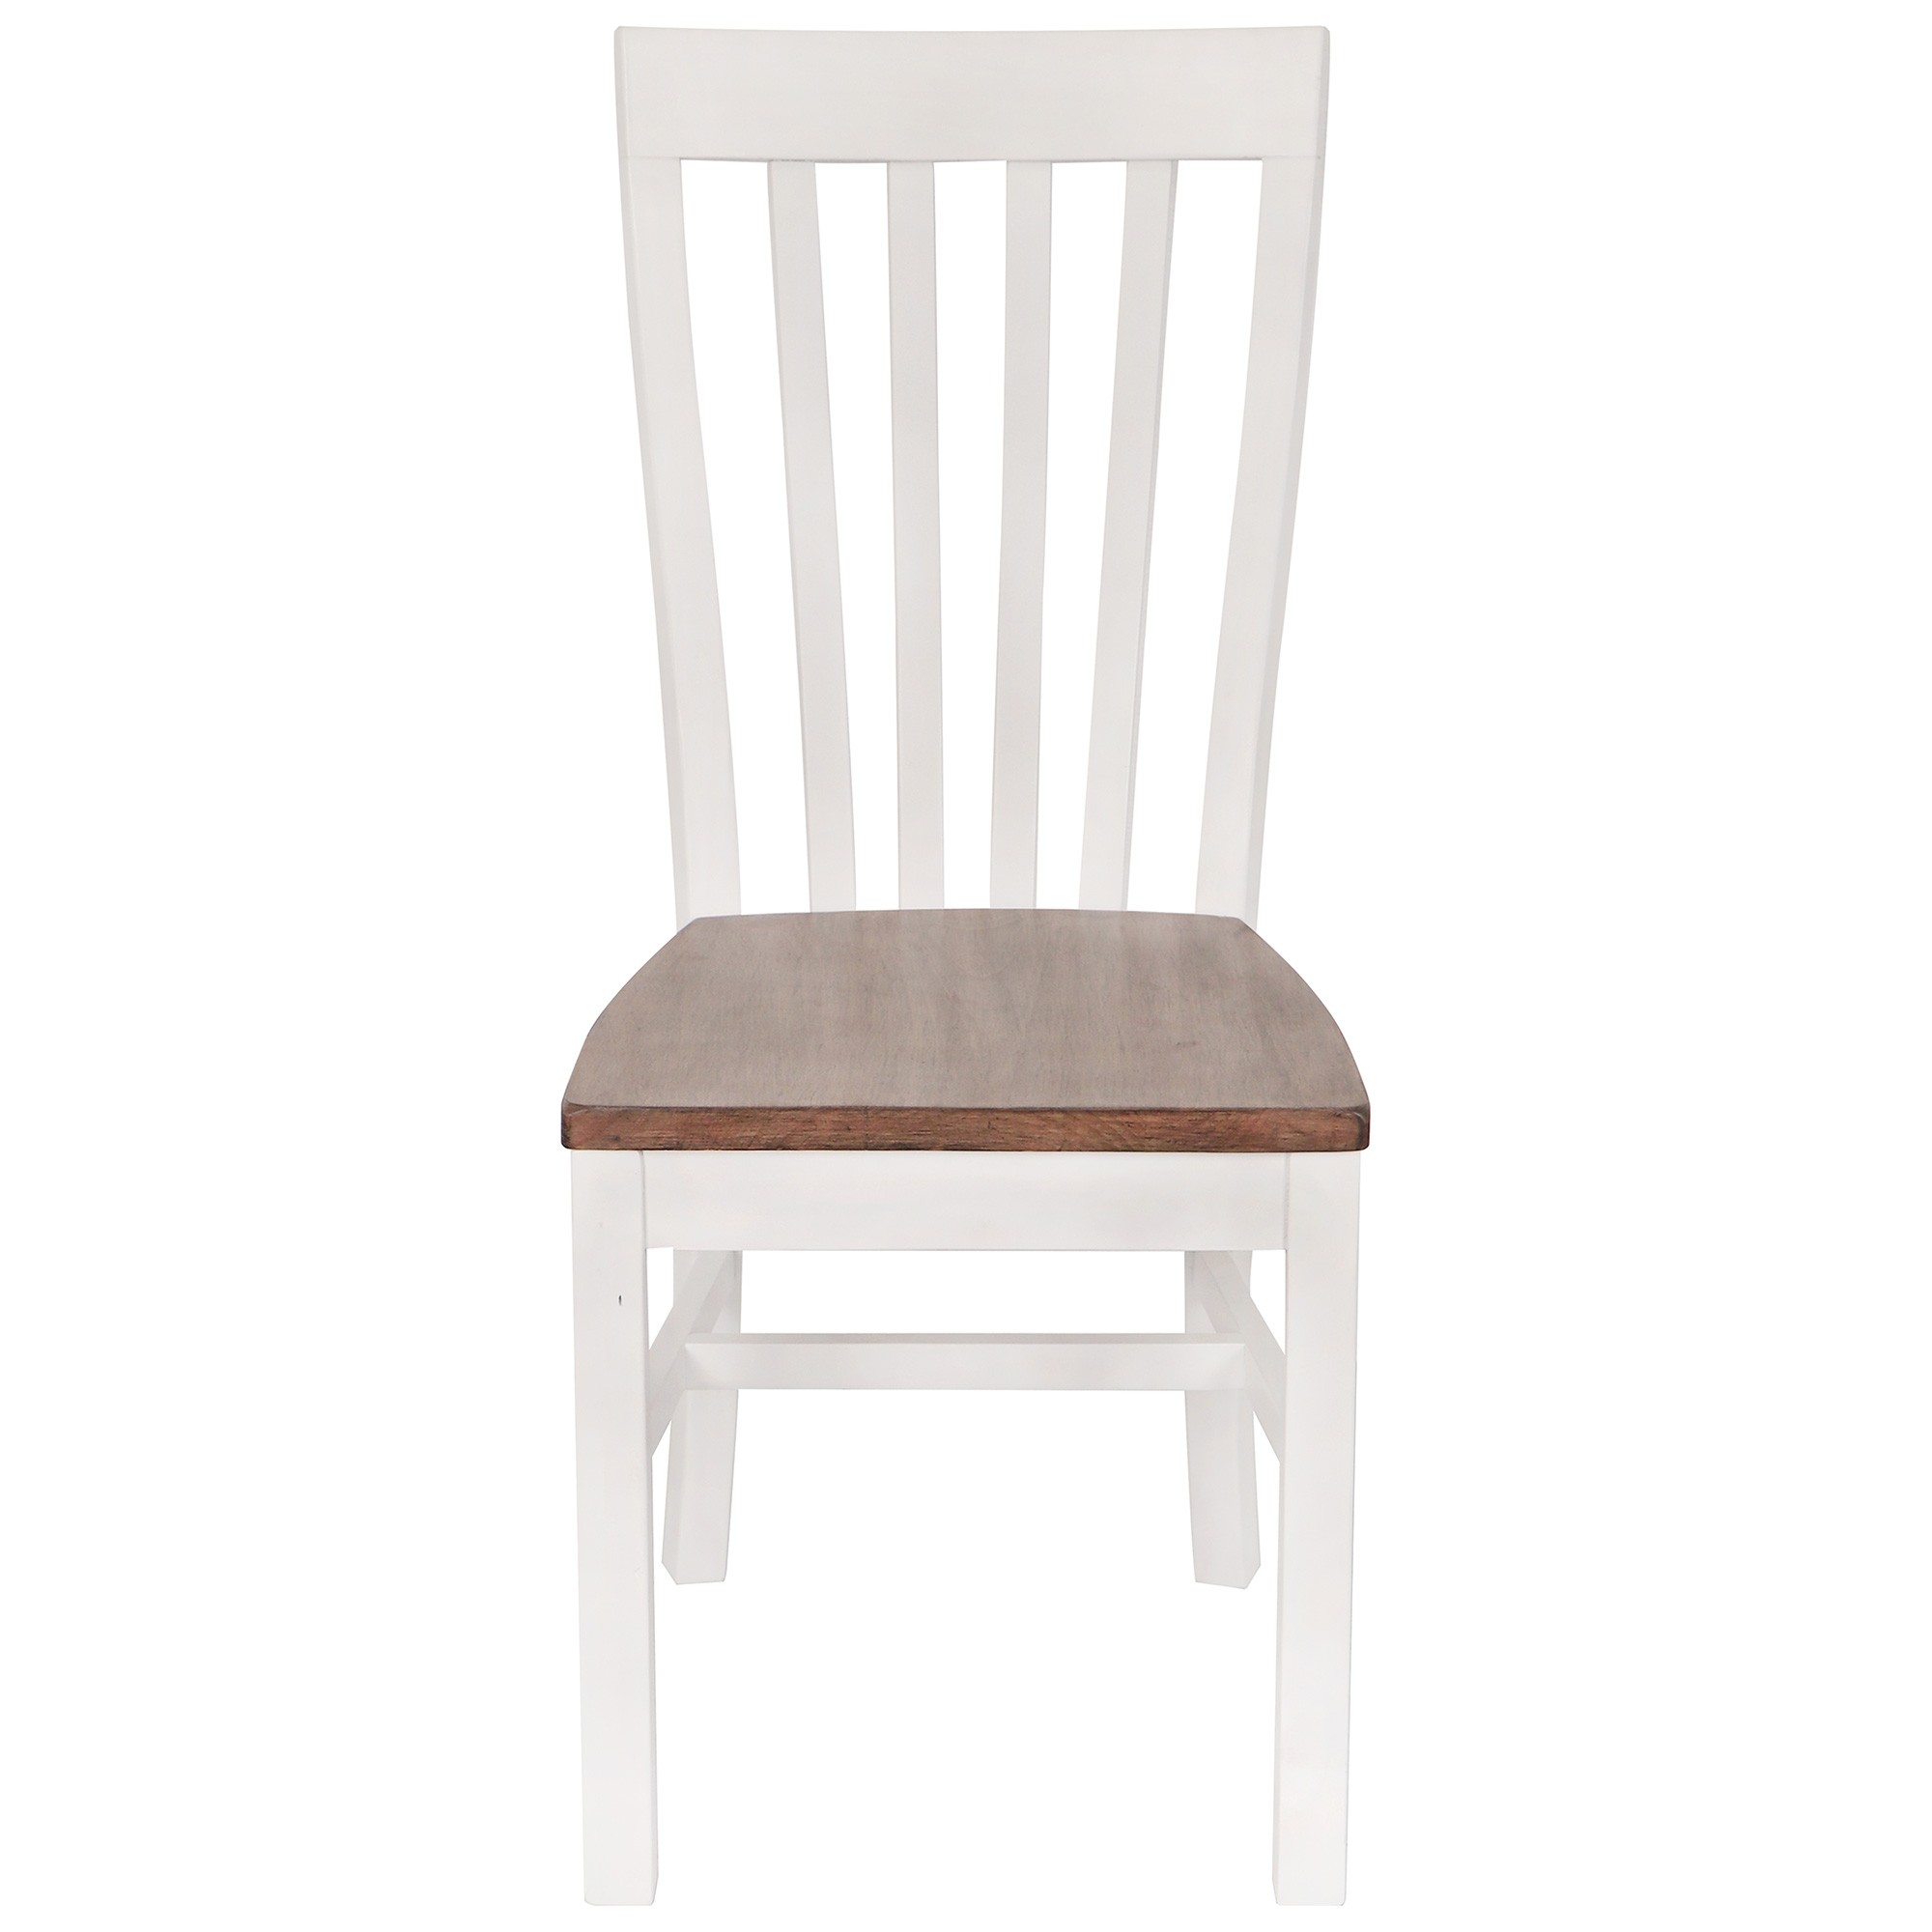 Clontarf Pine Timber Dining Chair